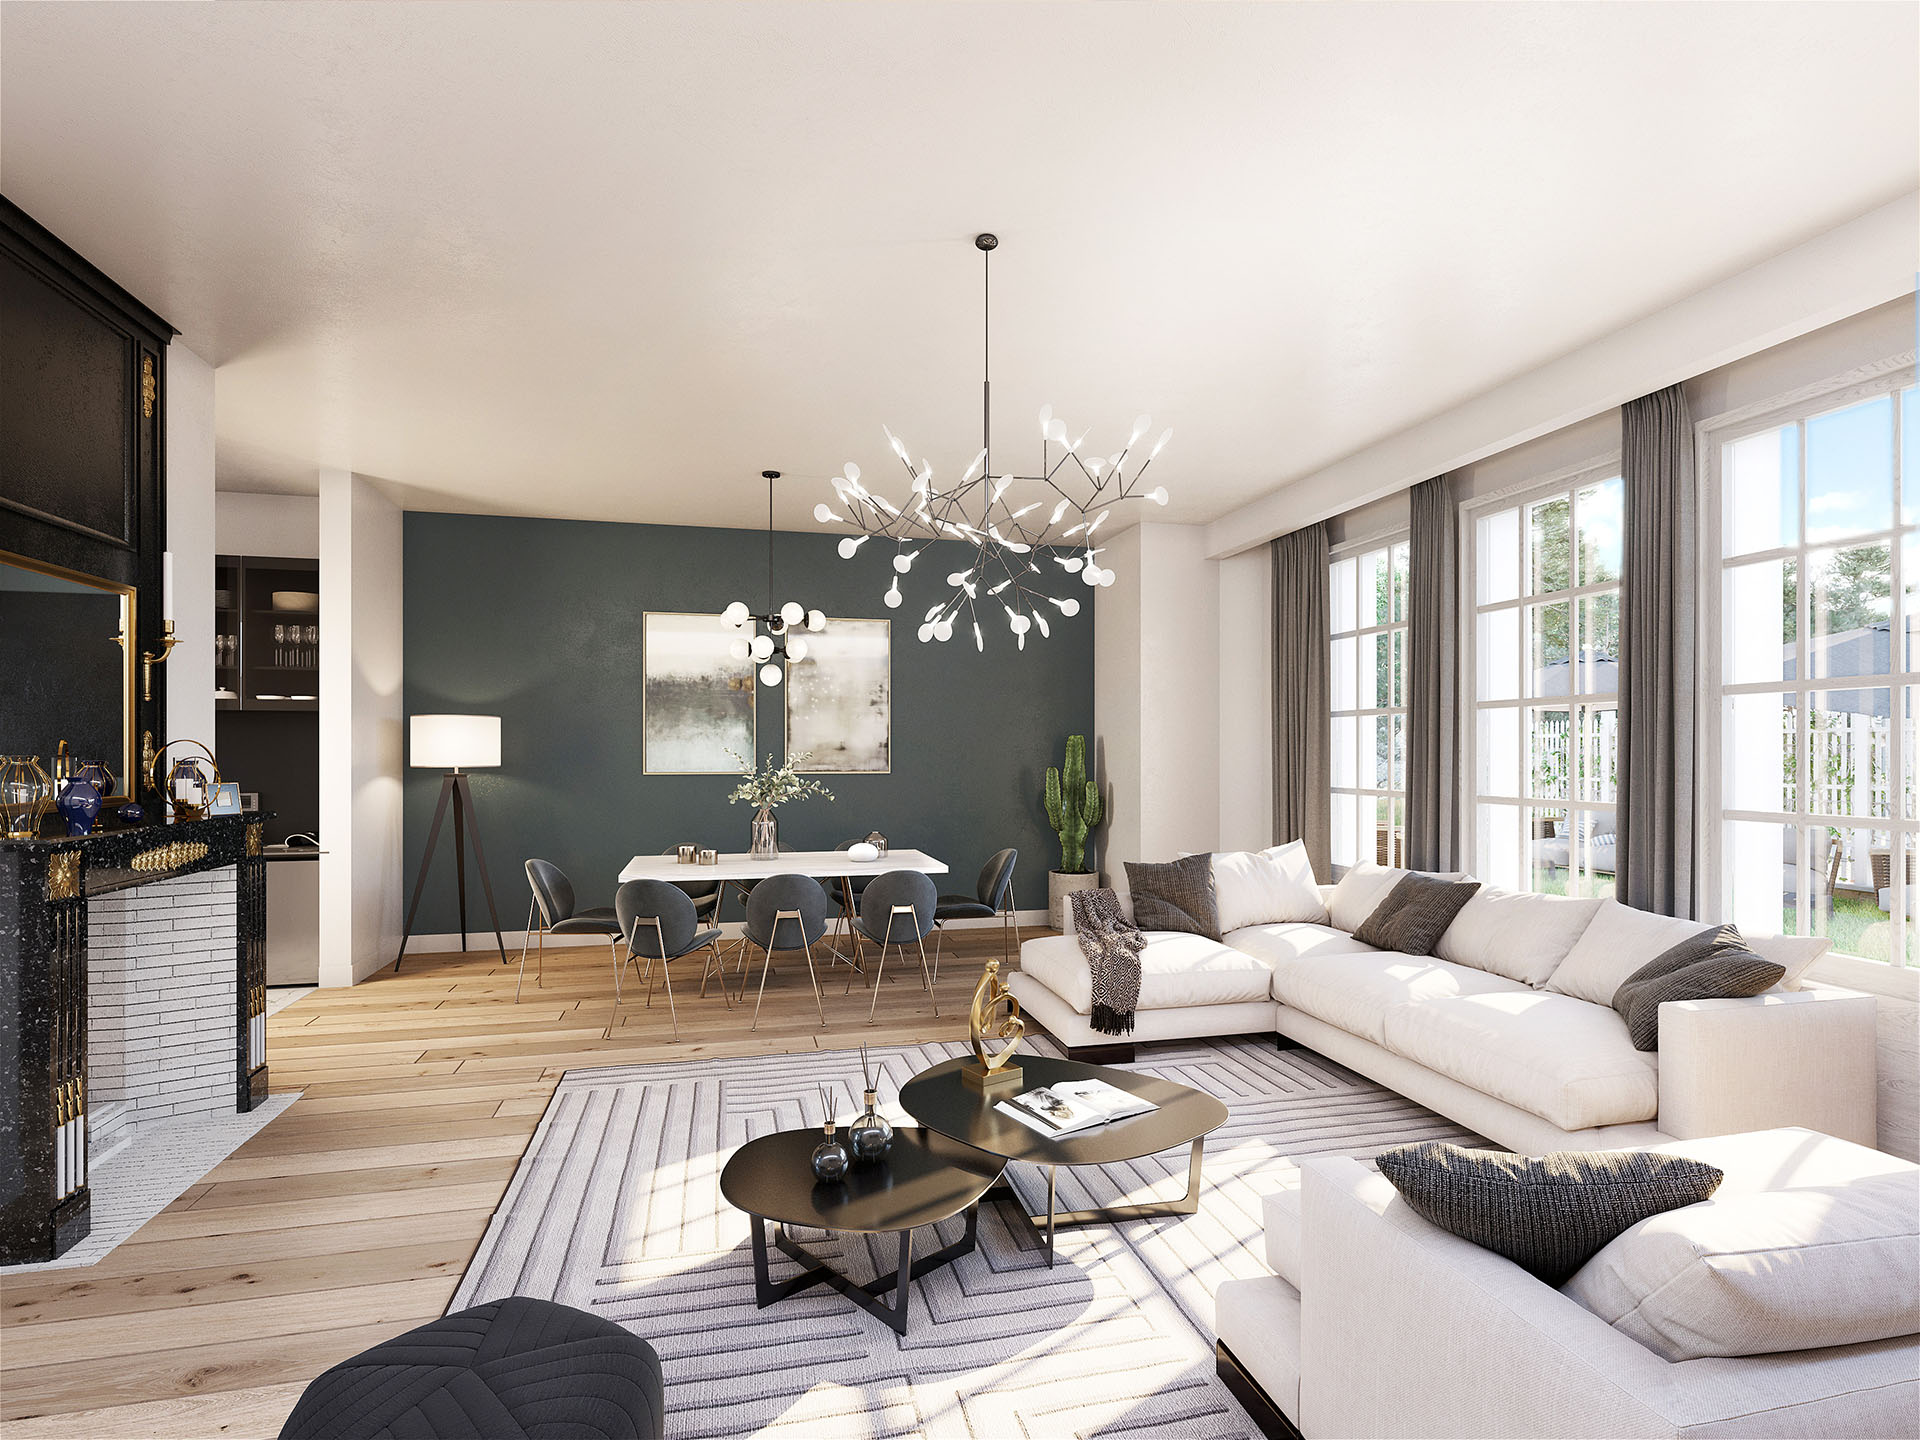 3D image of the interior of a new apartment